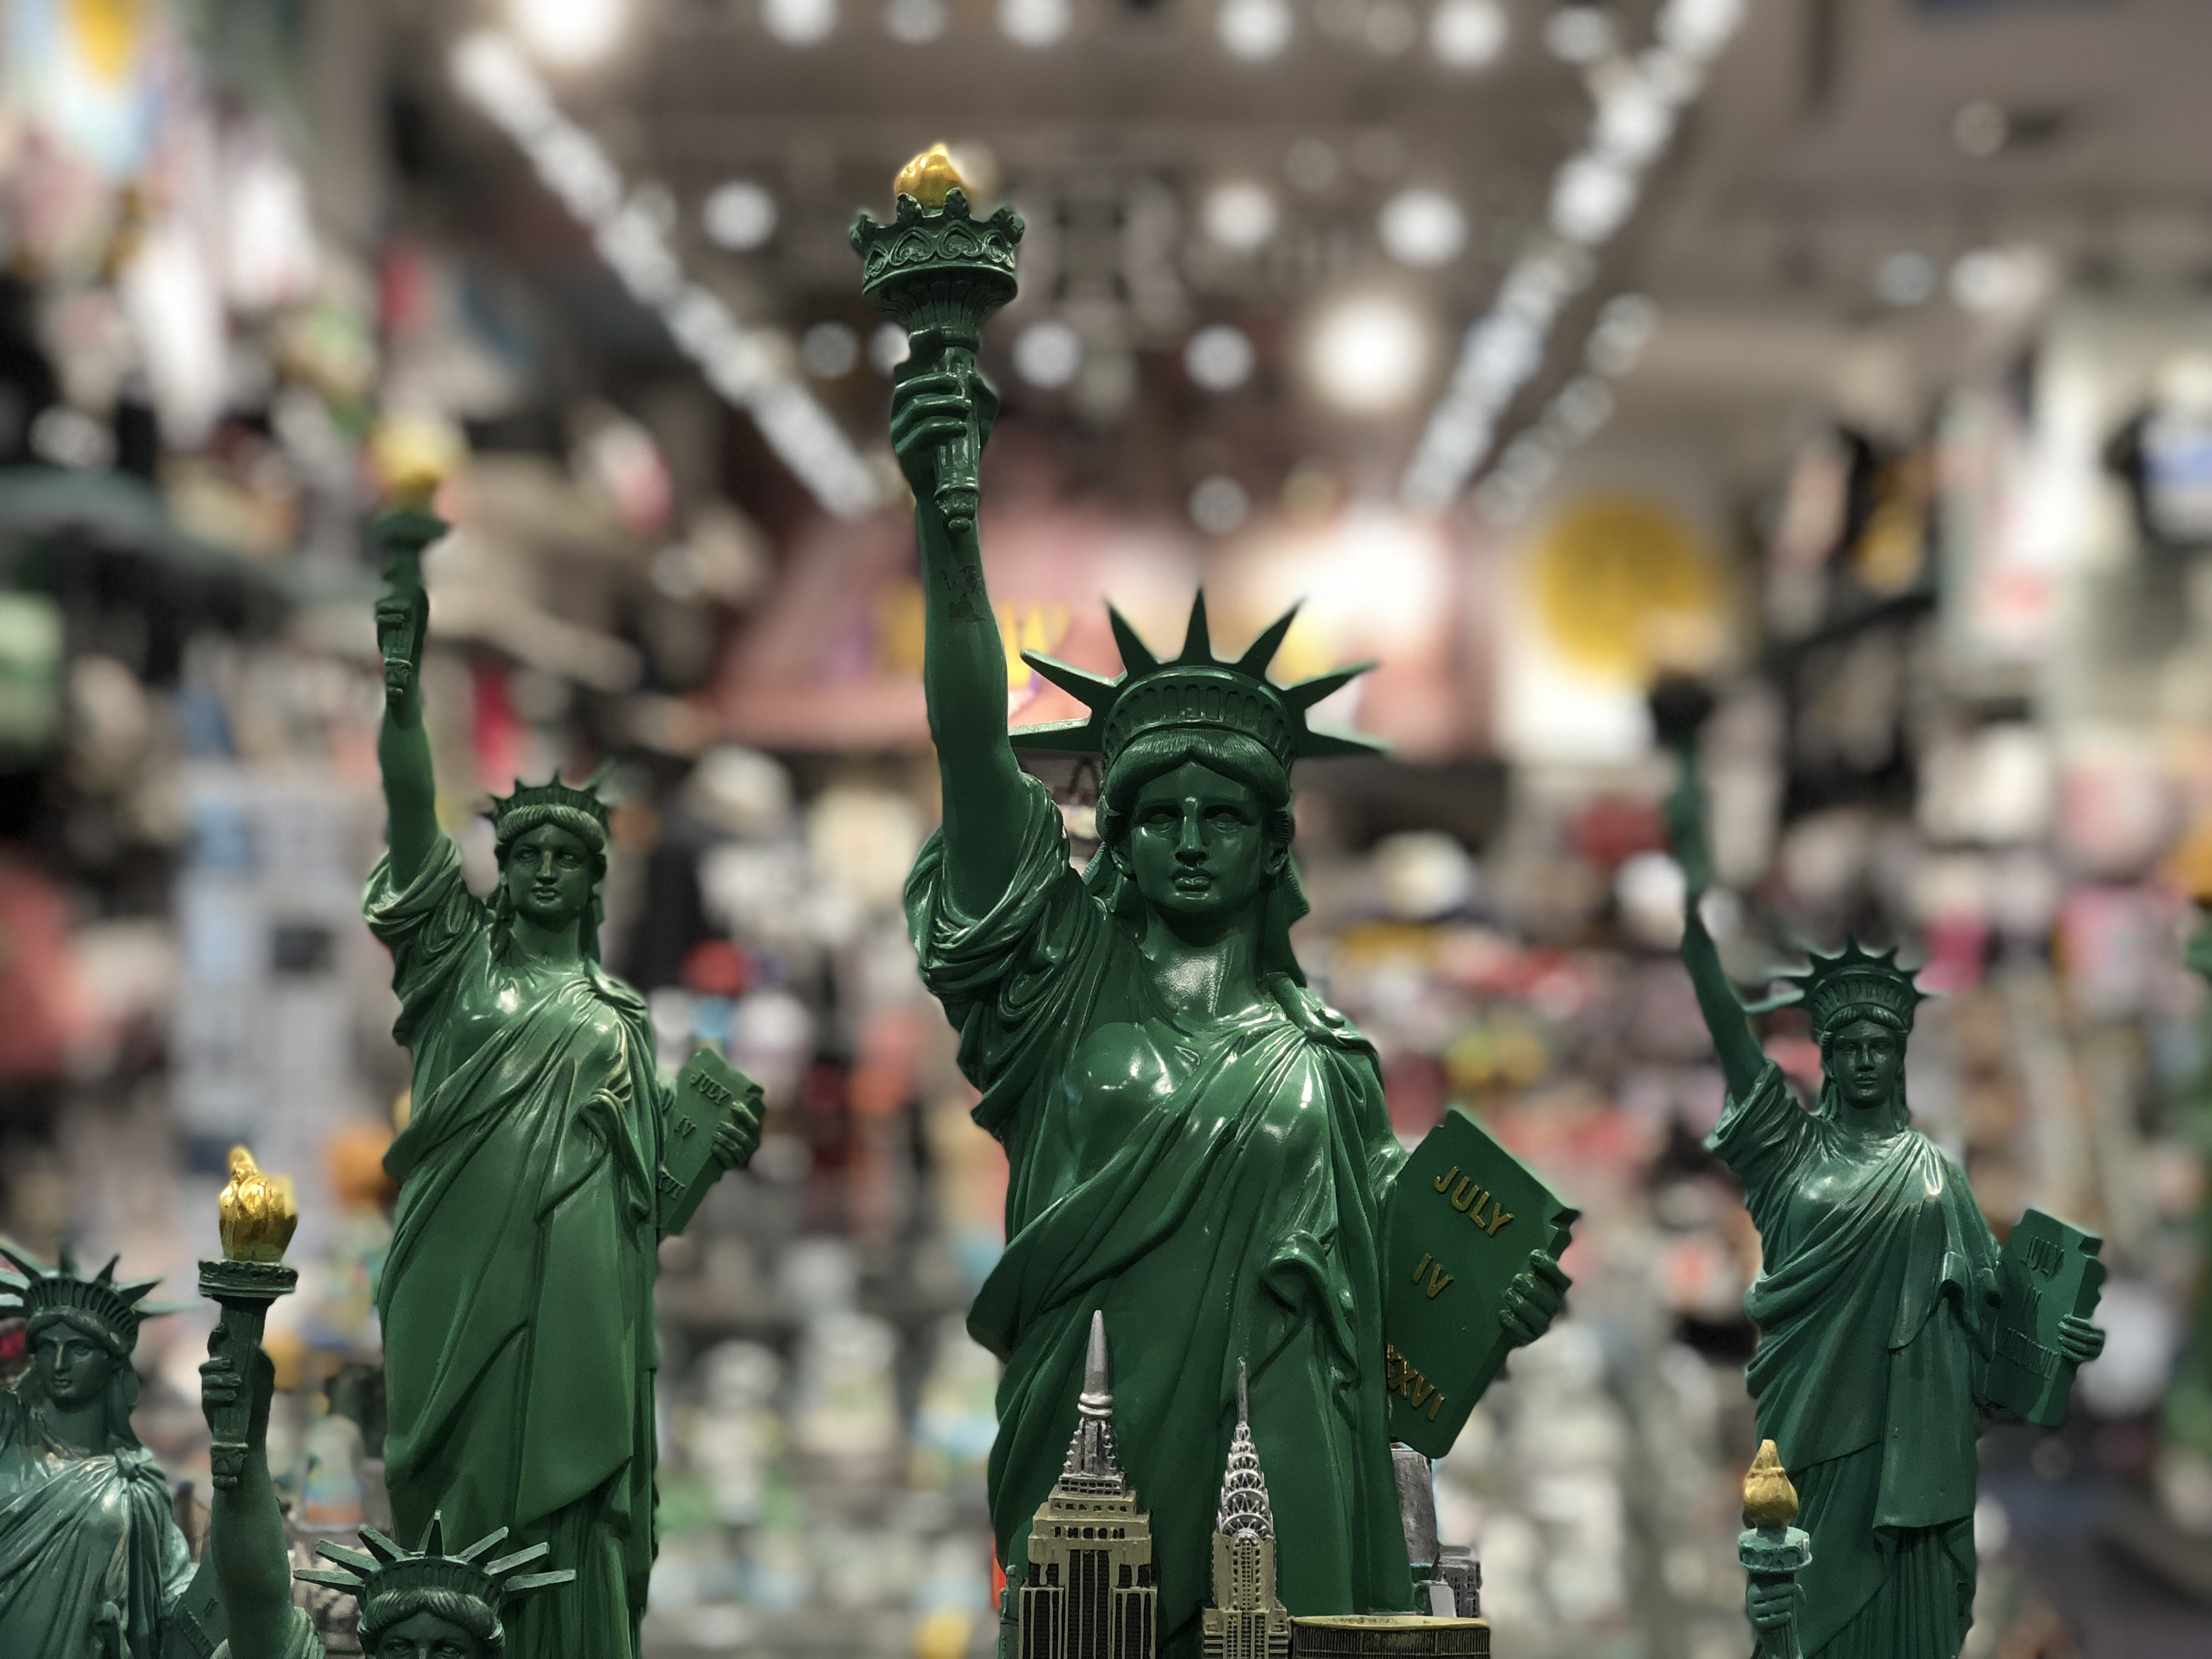 five green statue of liberty in shallow focus lens